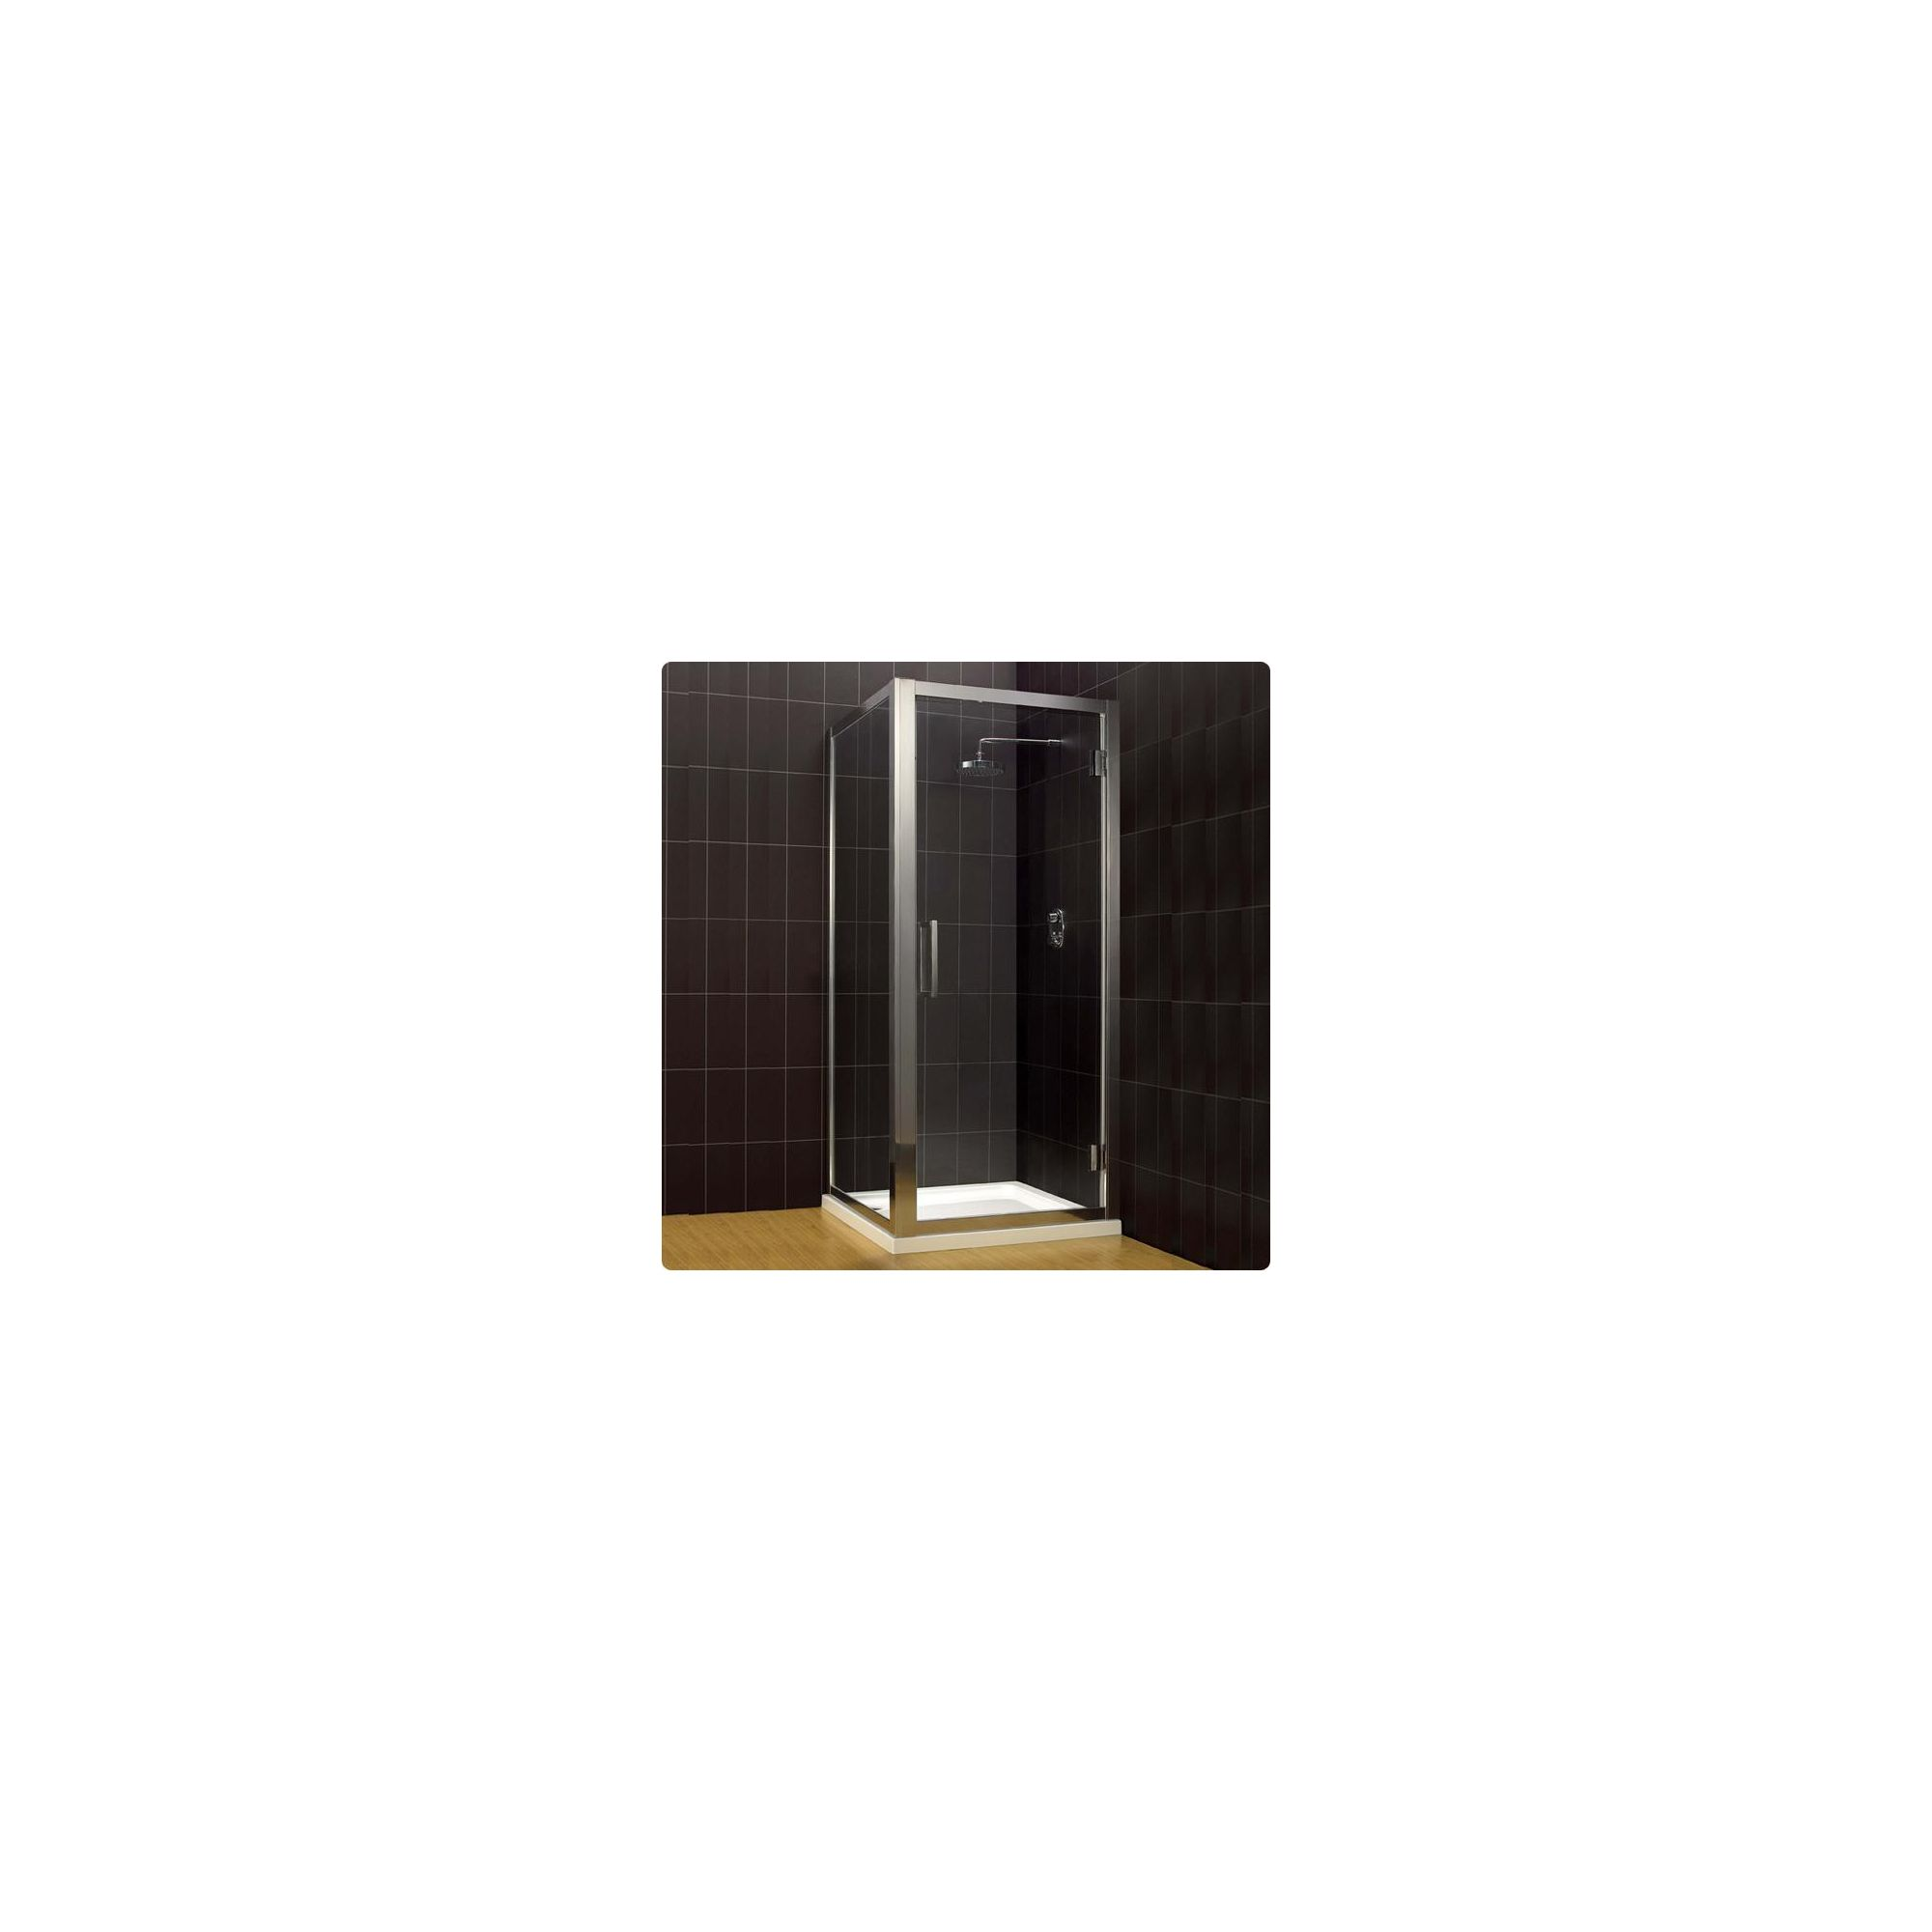 Duchy Supreme Silver Hinged Door Shower Enclosure with Towel Rail, 800mm x 800mm, Standard Tray, 8mm Glass at Tesco Direct